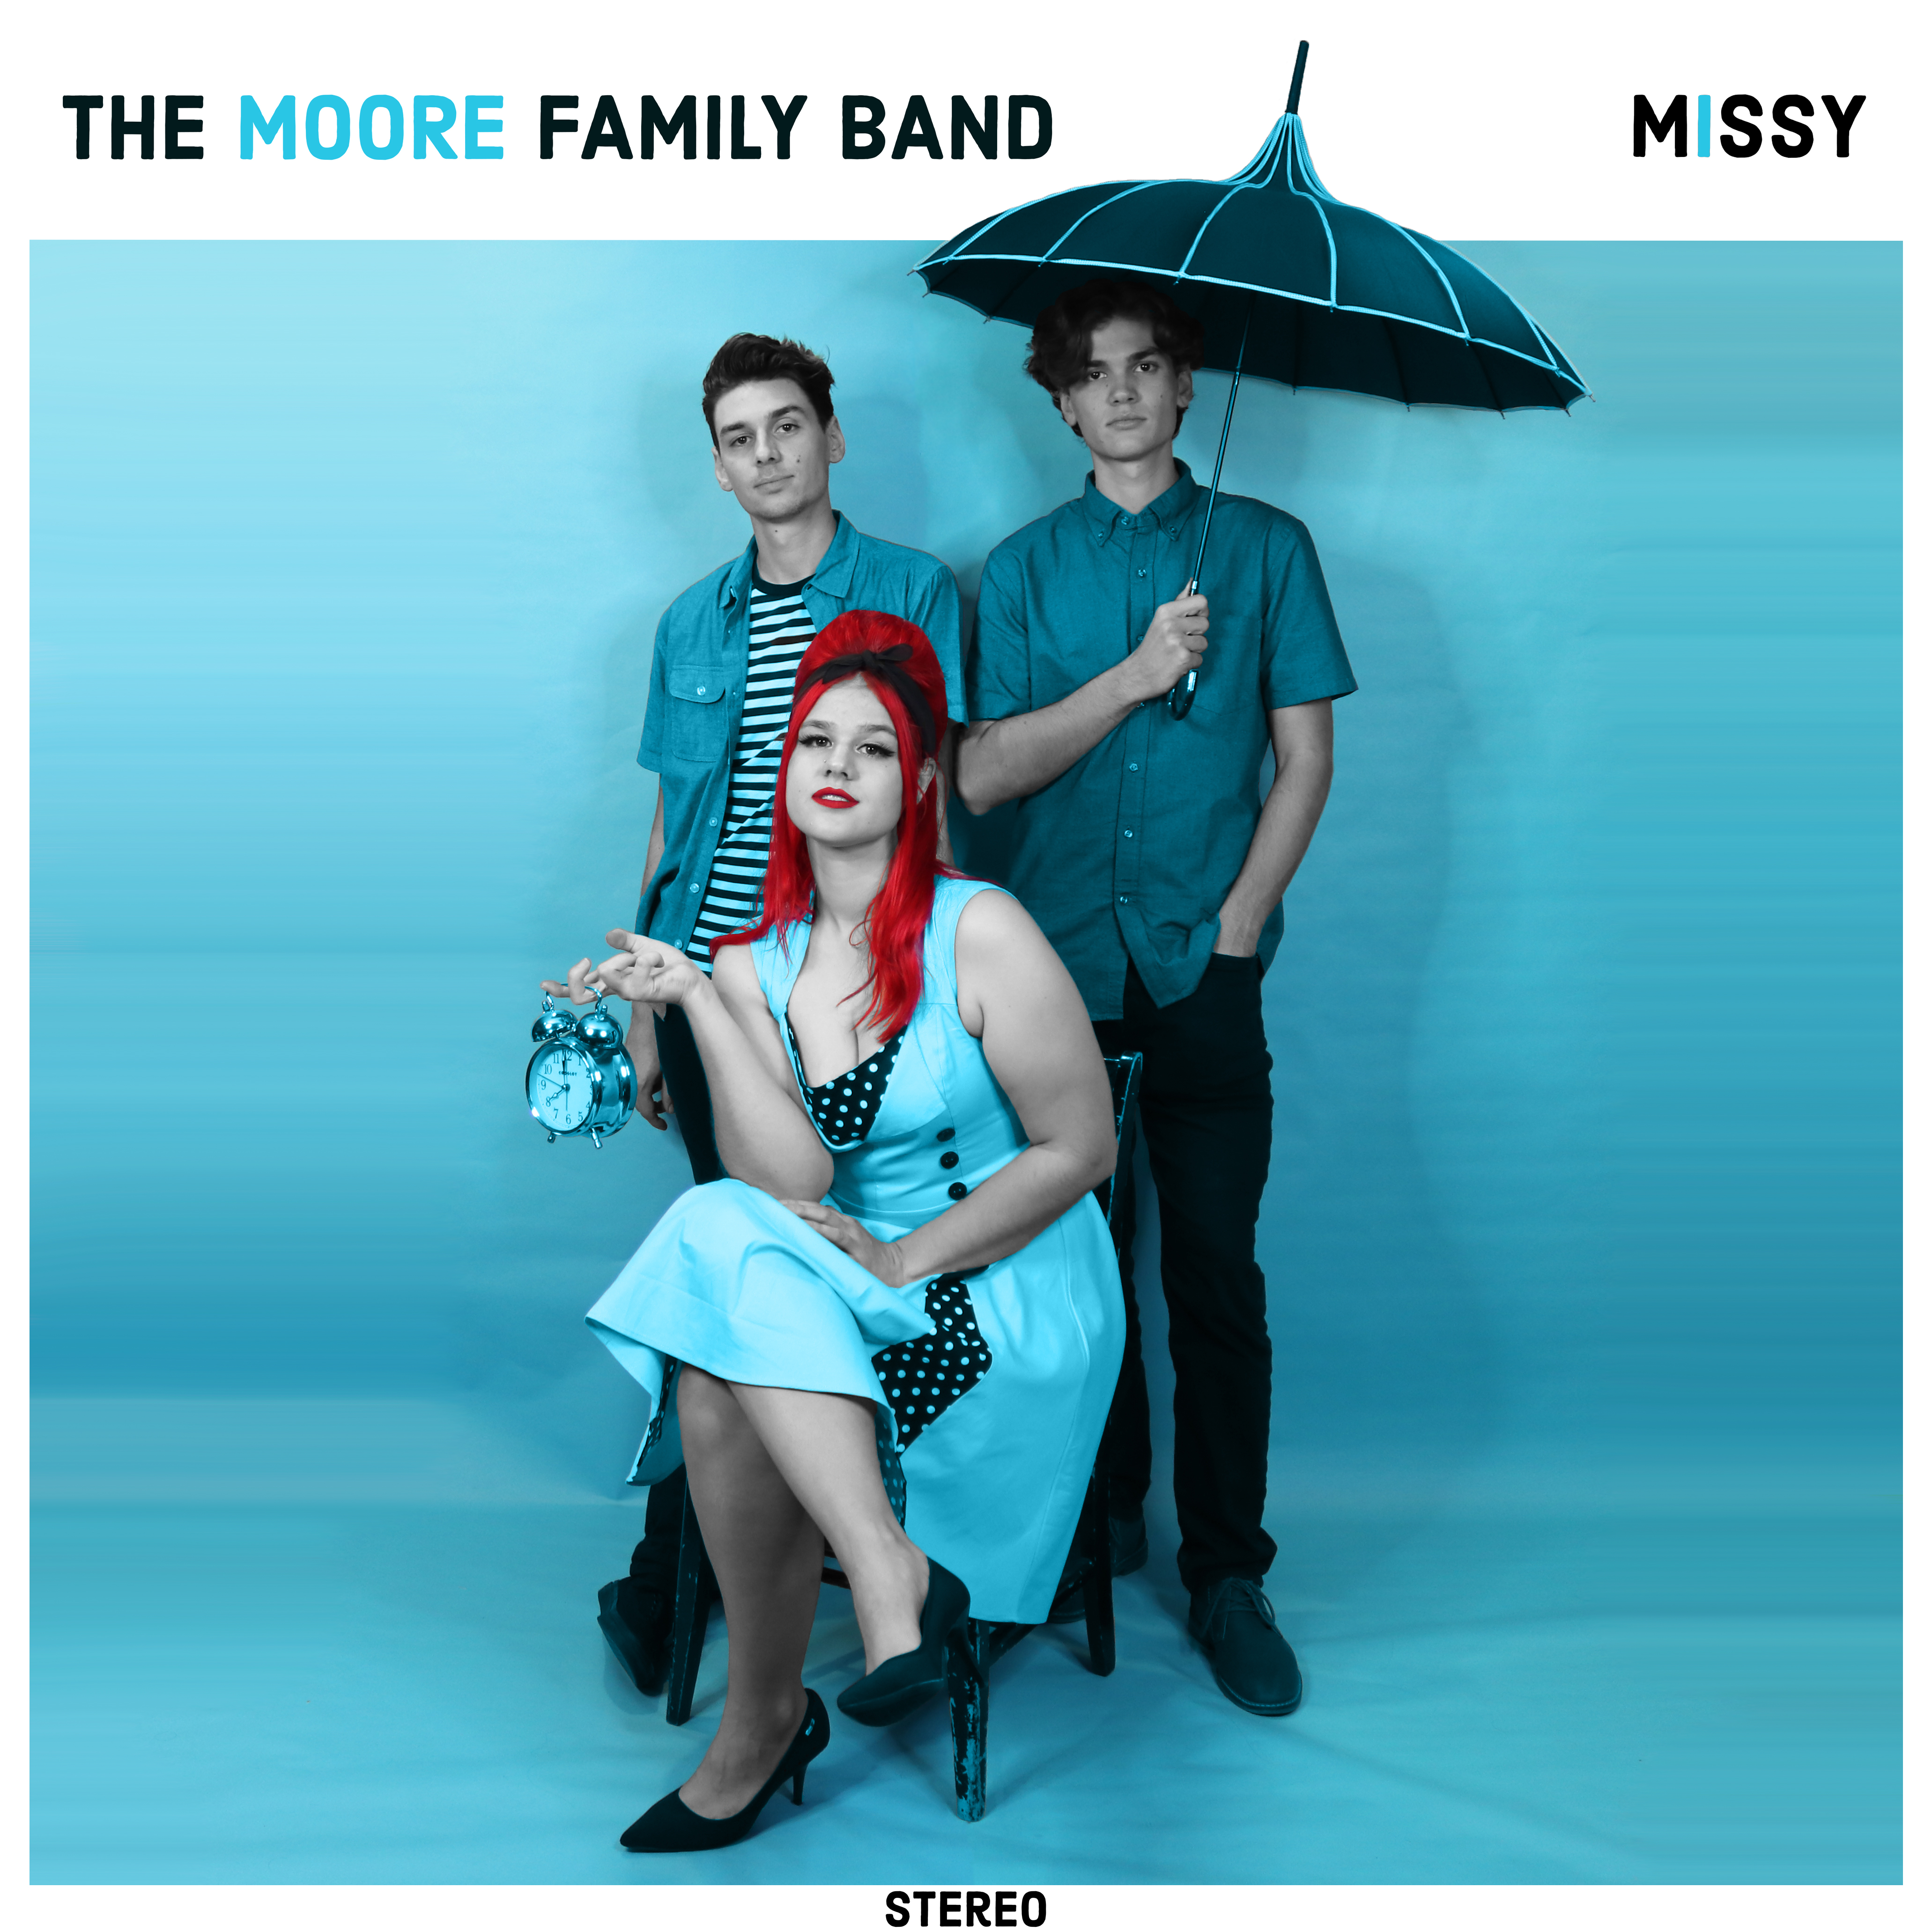 THE MOORE FAMILY BAND